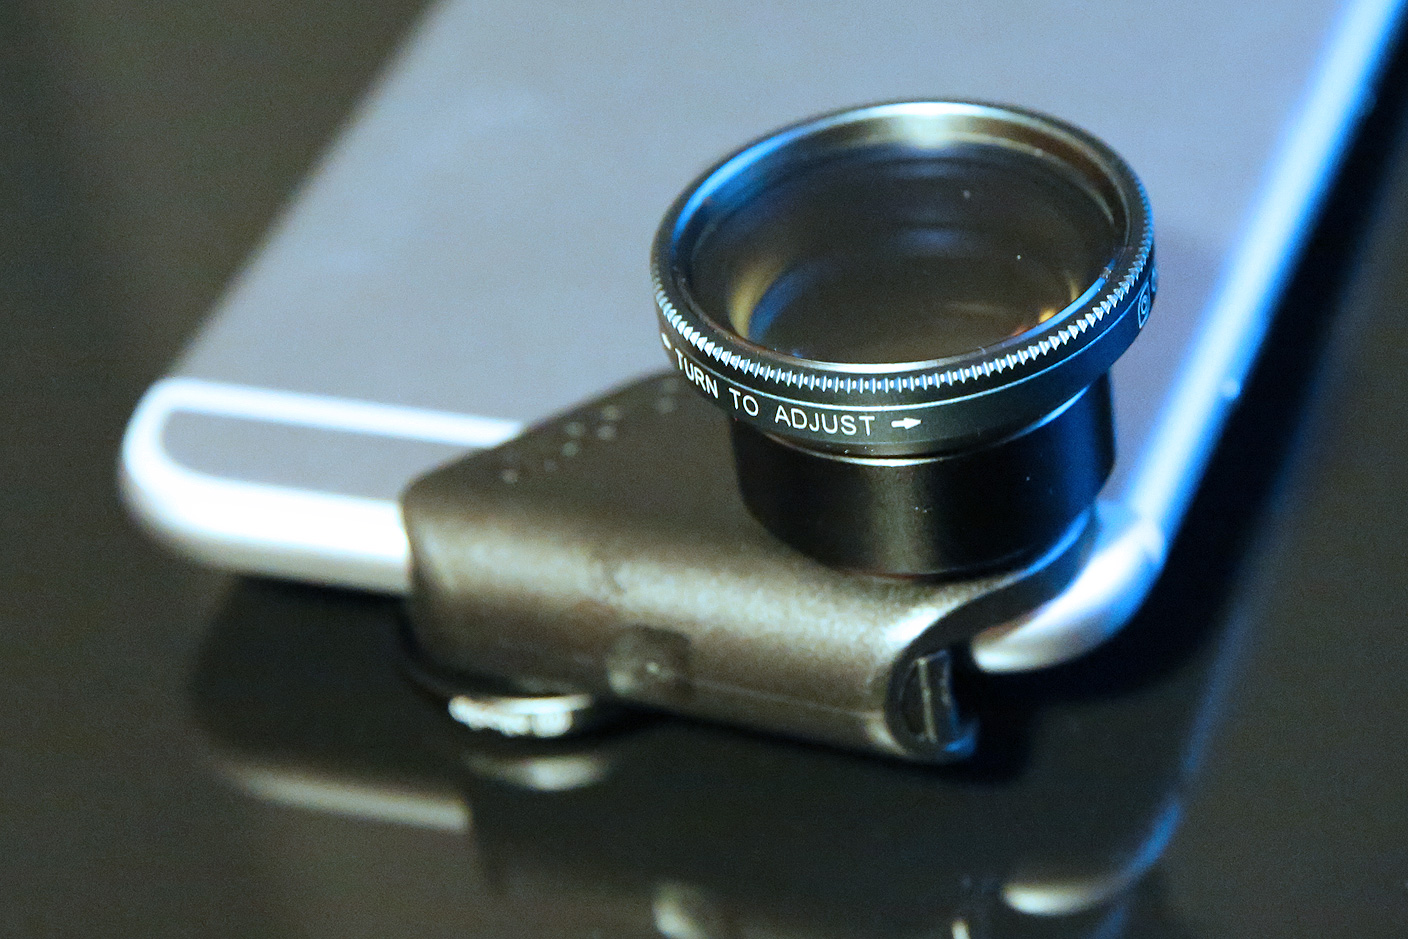 288d7777f4a909 Review: Olloclip's Telephoto and Circular Polarizing Lens lets iPhone 6, 6  Plus users shoot 2X-magnified photos through glass - 9to5Mac